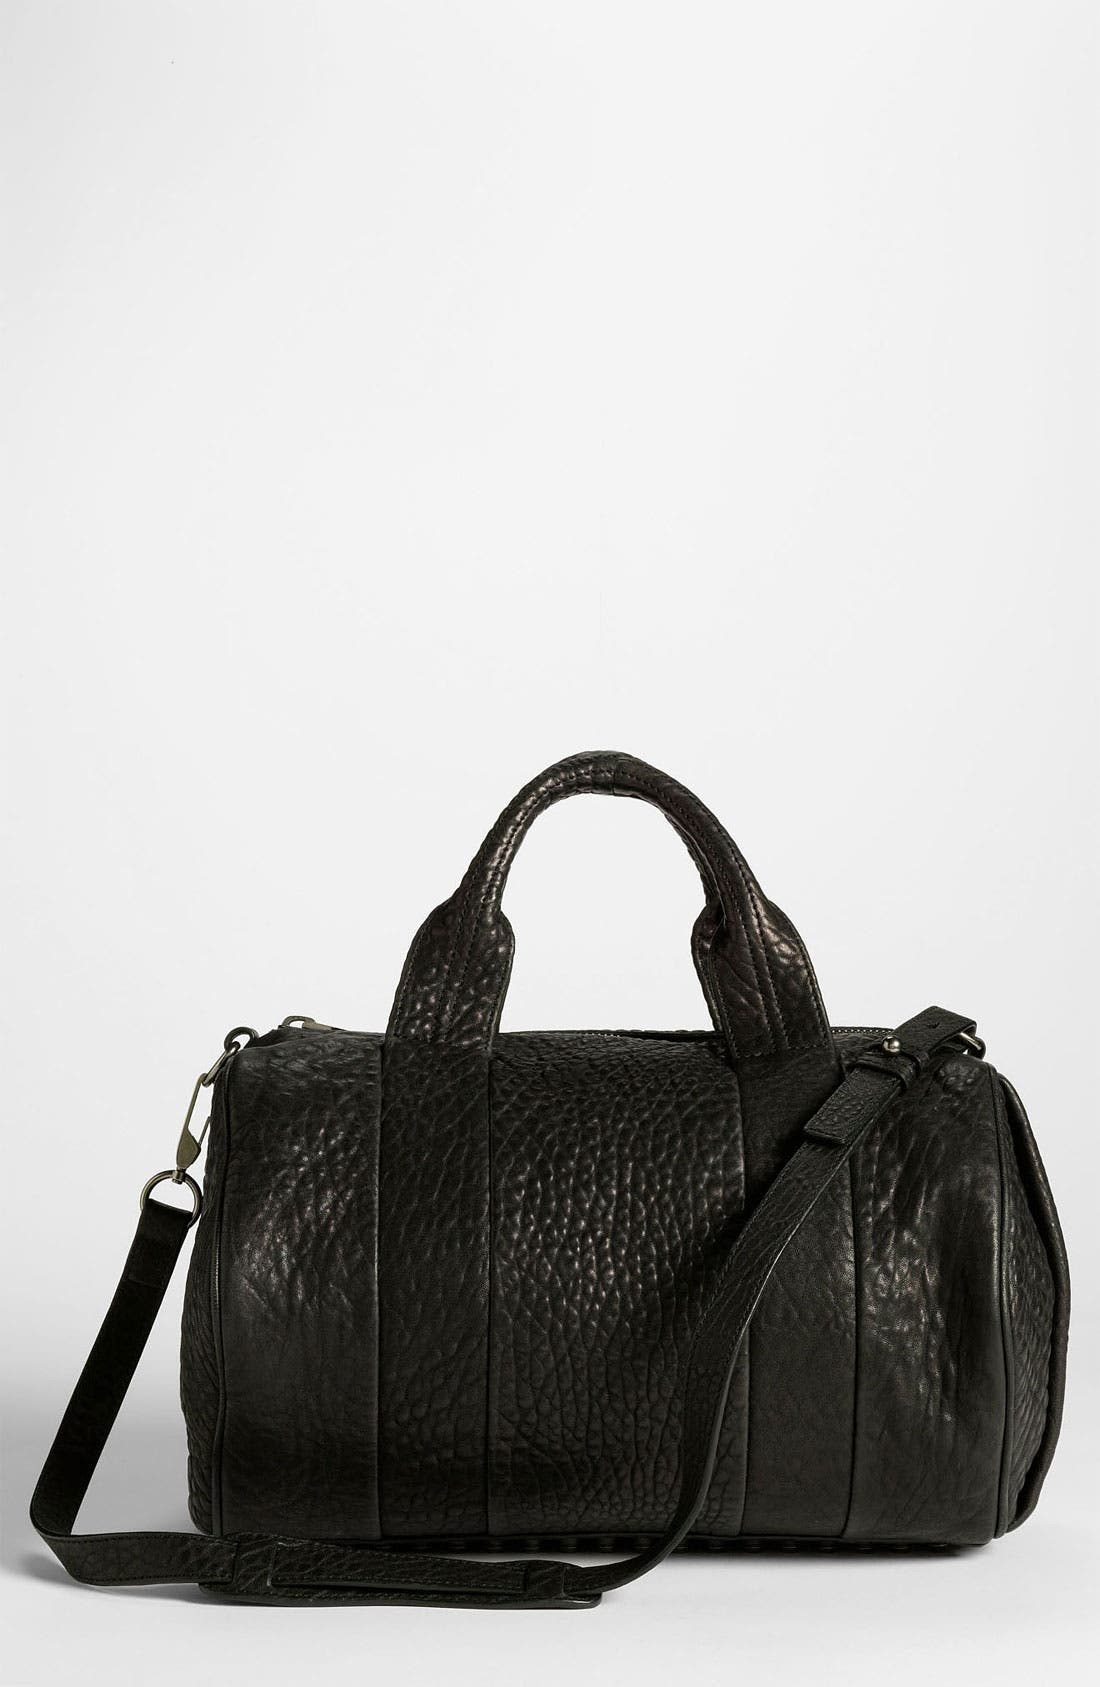 Alternate Image 1 Selected - Alexander Wang 'Rocco - Black Nickel' Leather Satchel